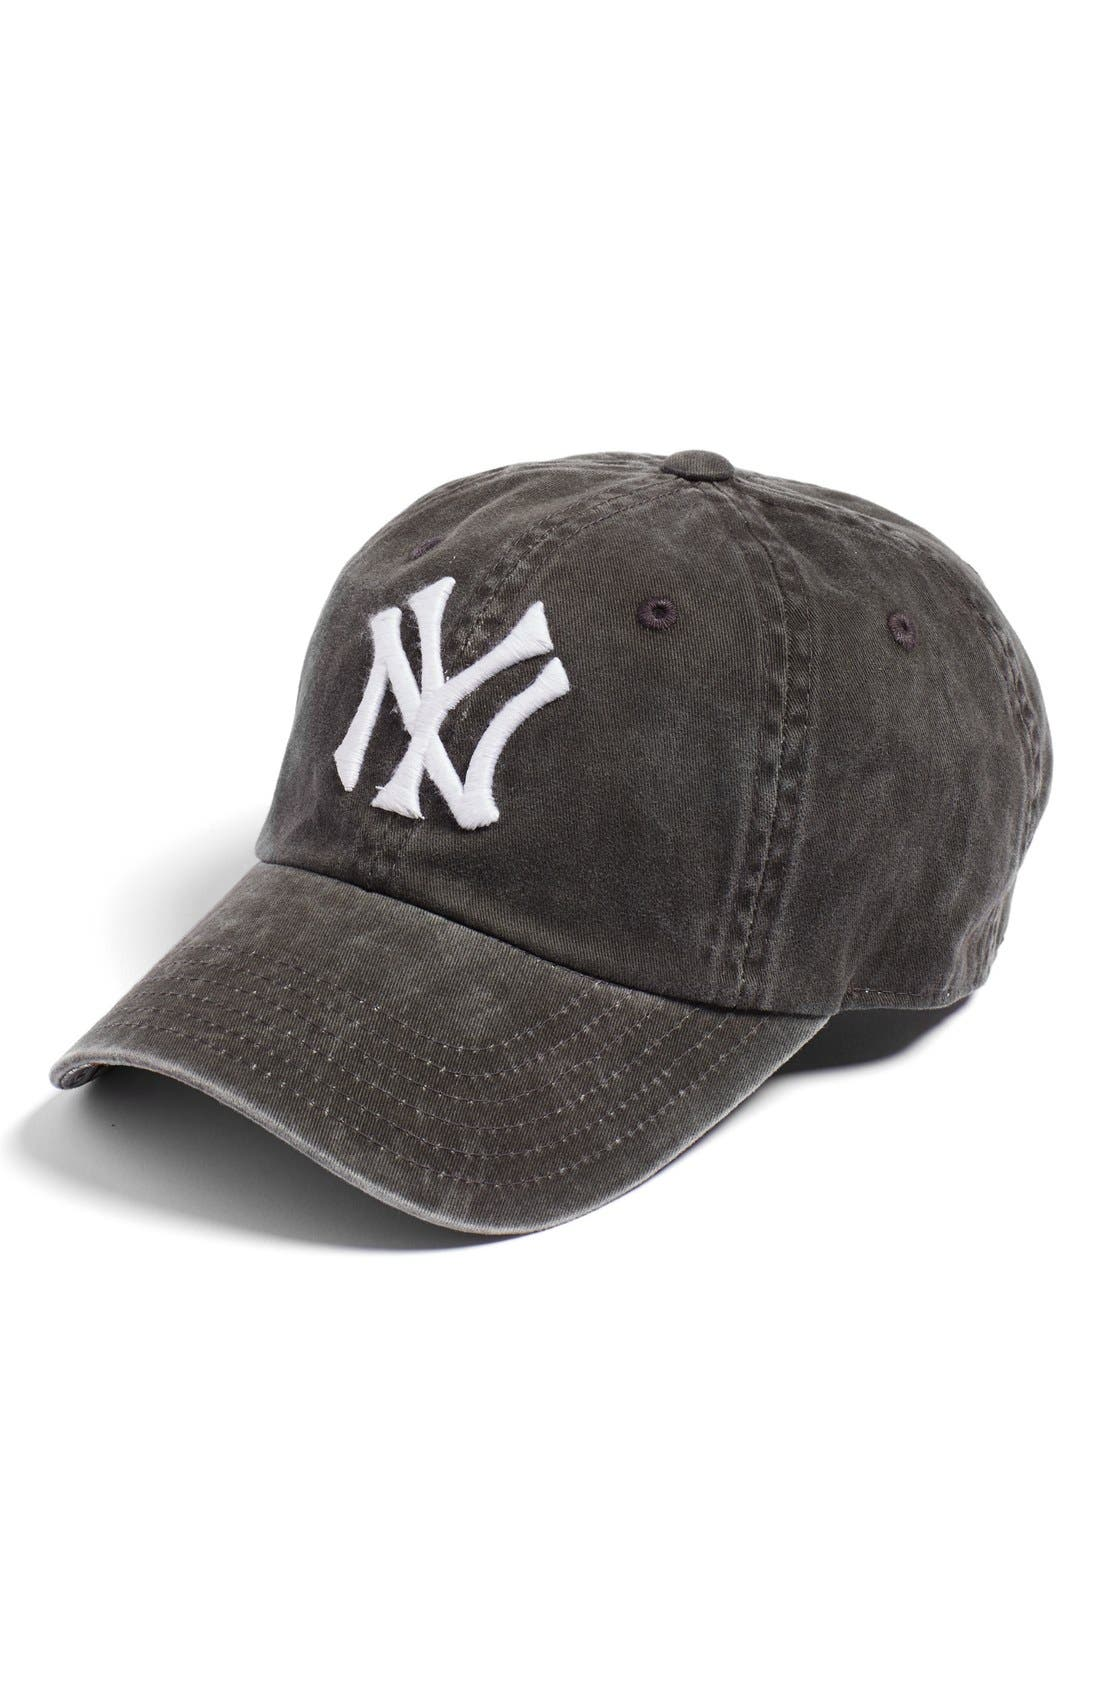 38a575cc6685b closeout ny yankees hat a6307 9e17d  authentic american needle new raglan new  york yankees baseball cap nordstrom 0bd91 19420